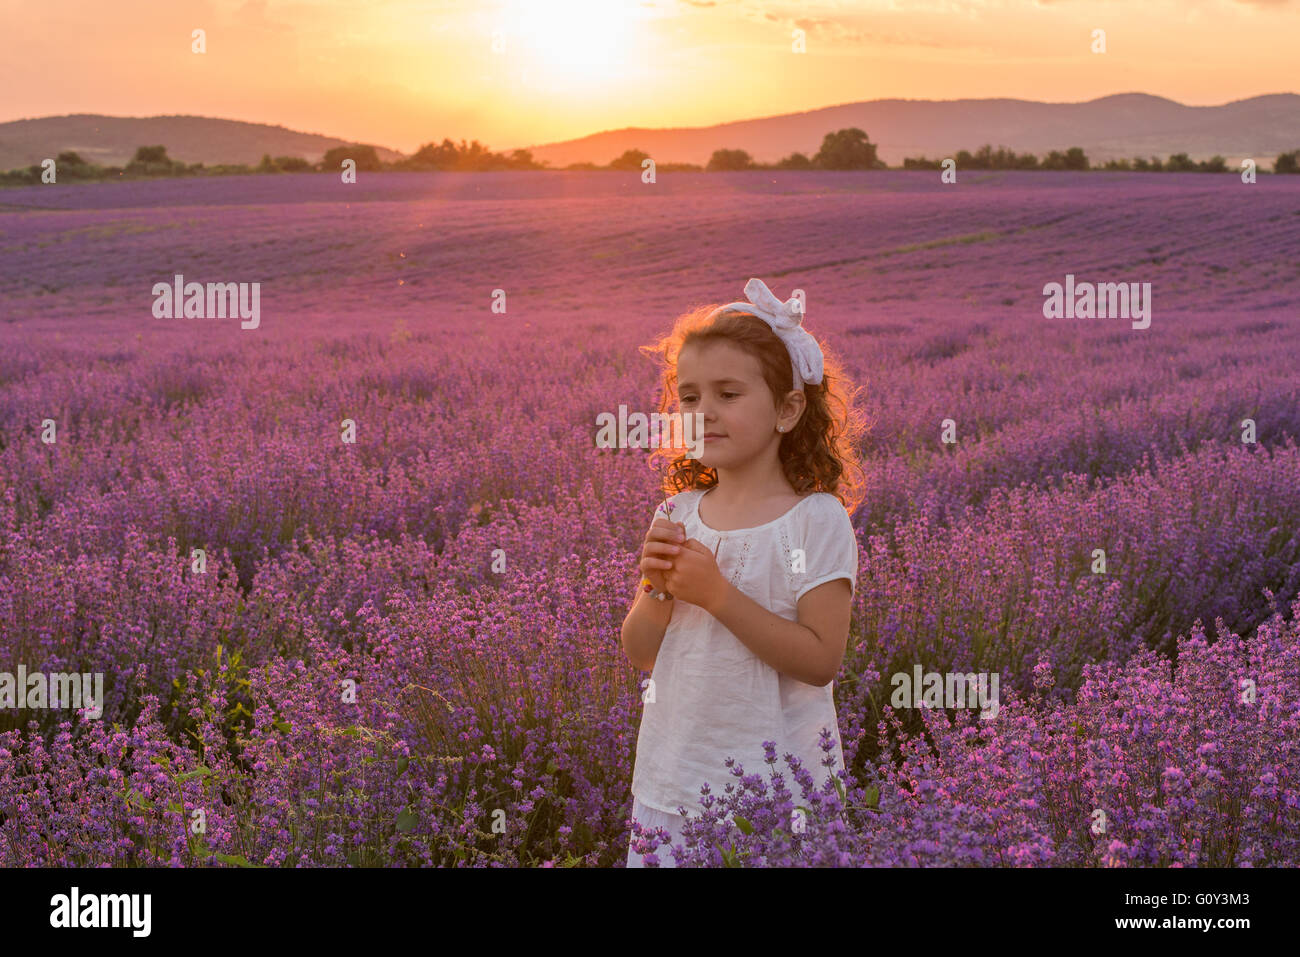 Portrait of a Girl standing in lavender field, Kazanlak, Bulgaria - Stock Image